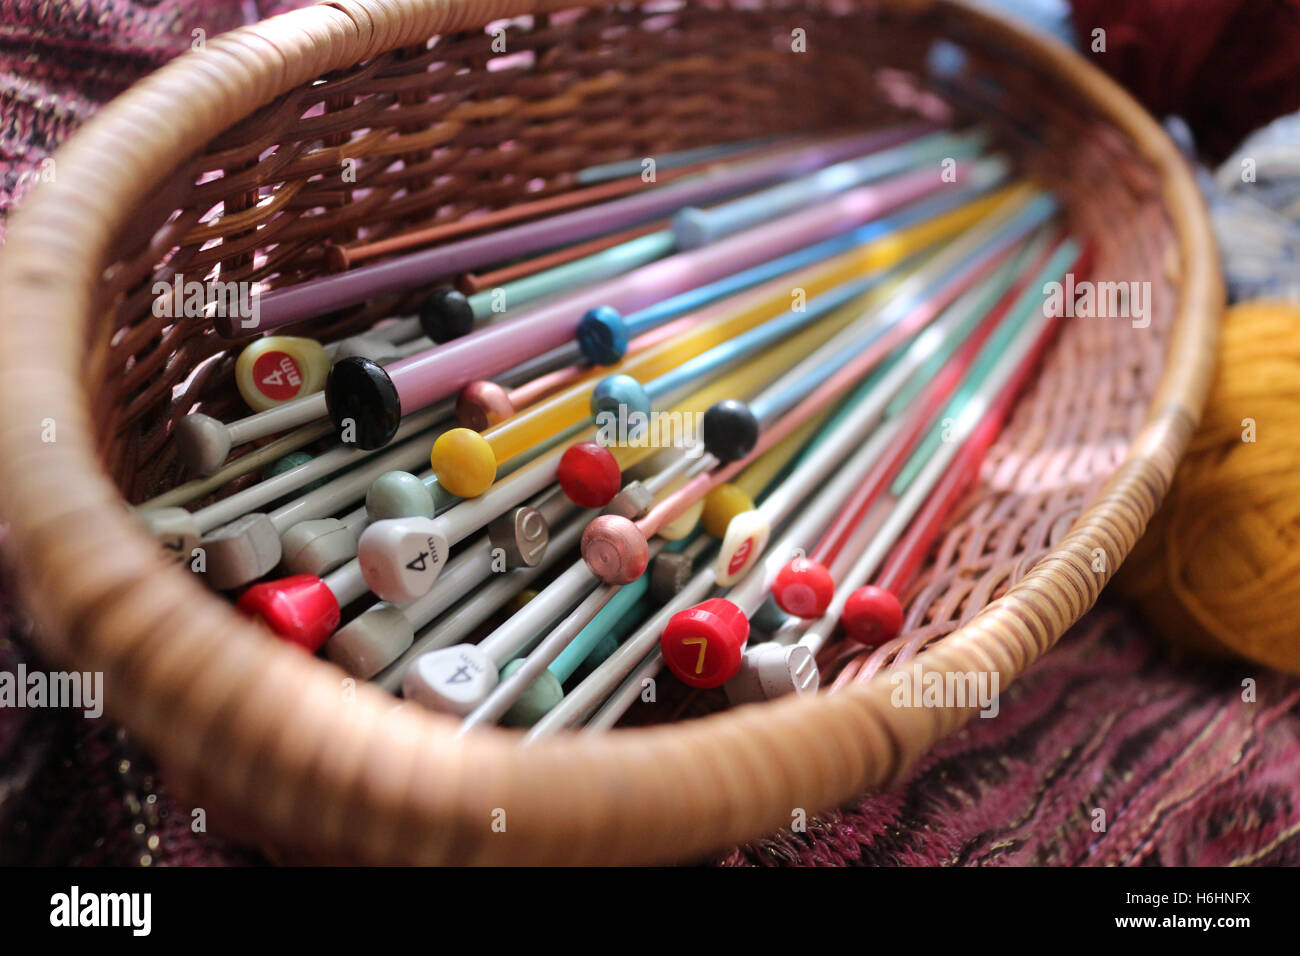 Knitting Needles - Stock Image